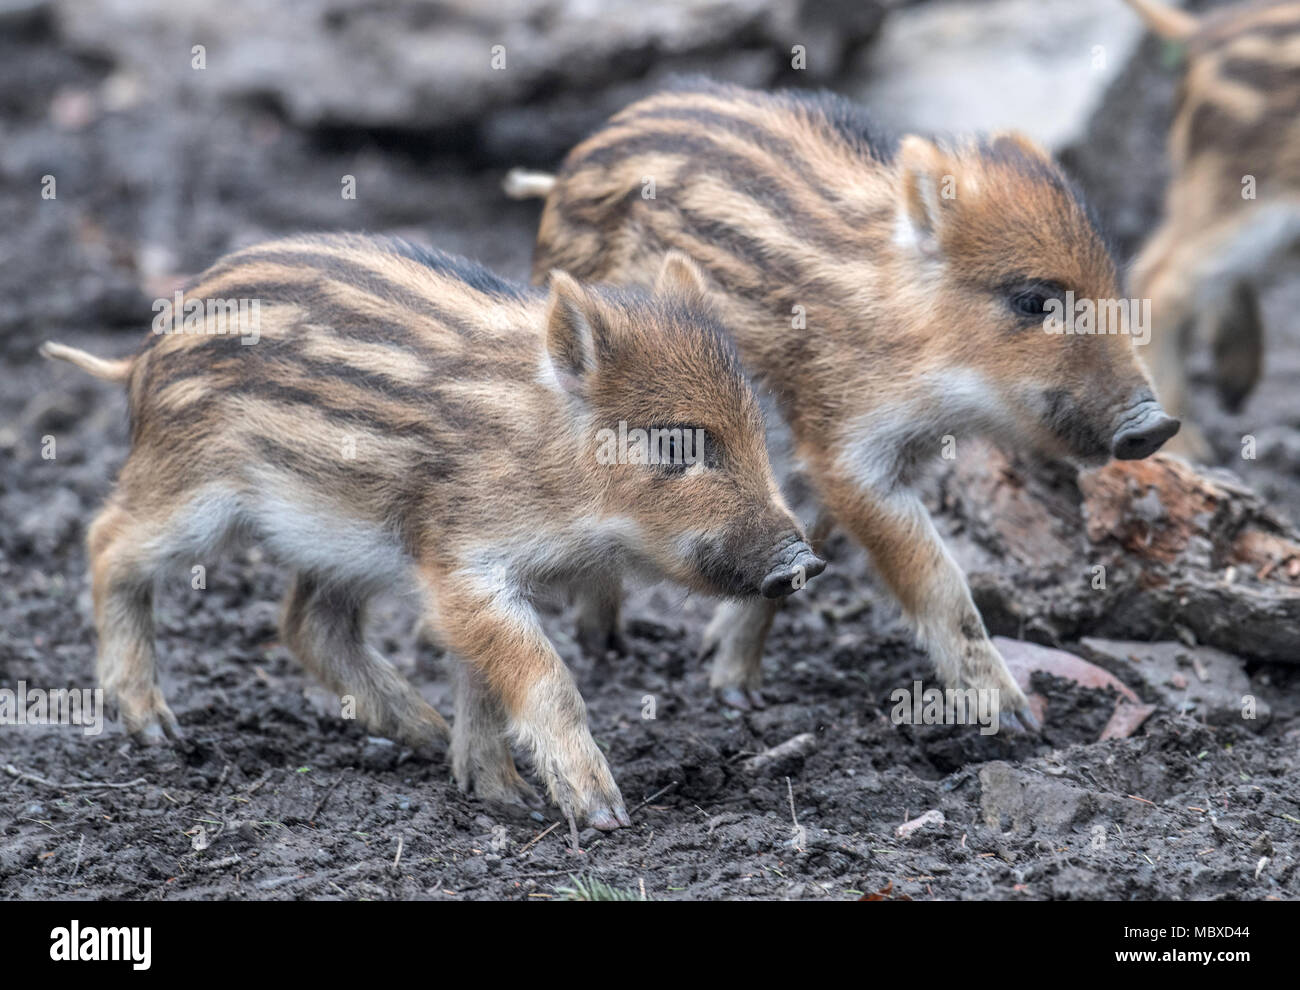 Witten, Germany. 12 April 2018, Germany, Witten: Young wild boars dwell in an open-air enclosure. Photo: Bernd Thissen/dpa Credit: dpa picture alliance/Alamy Live News - Stock Image